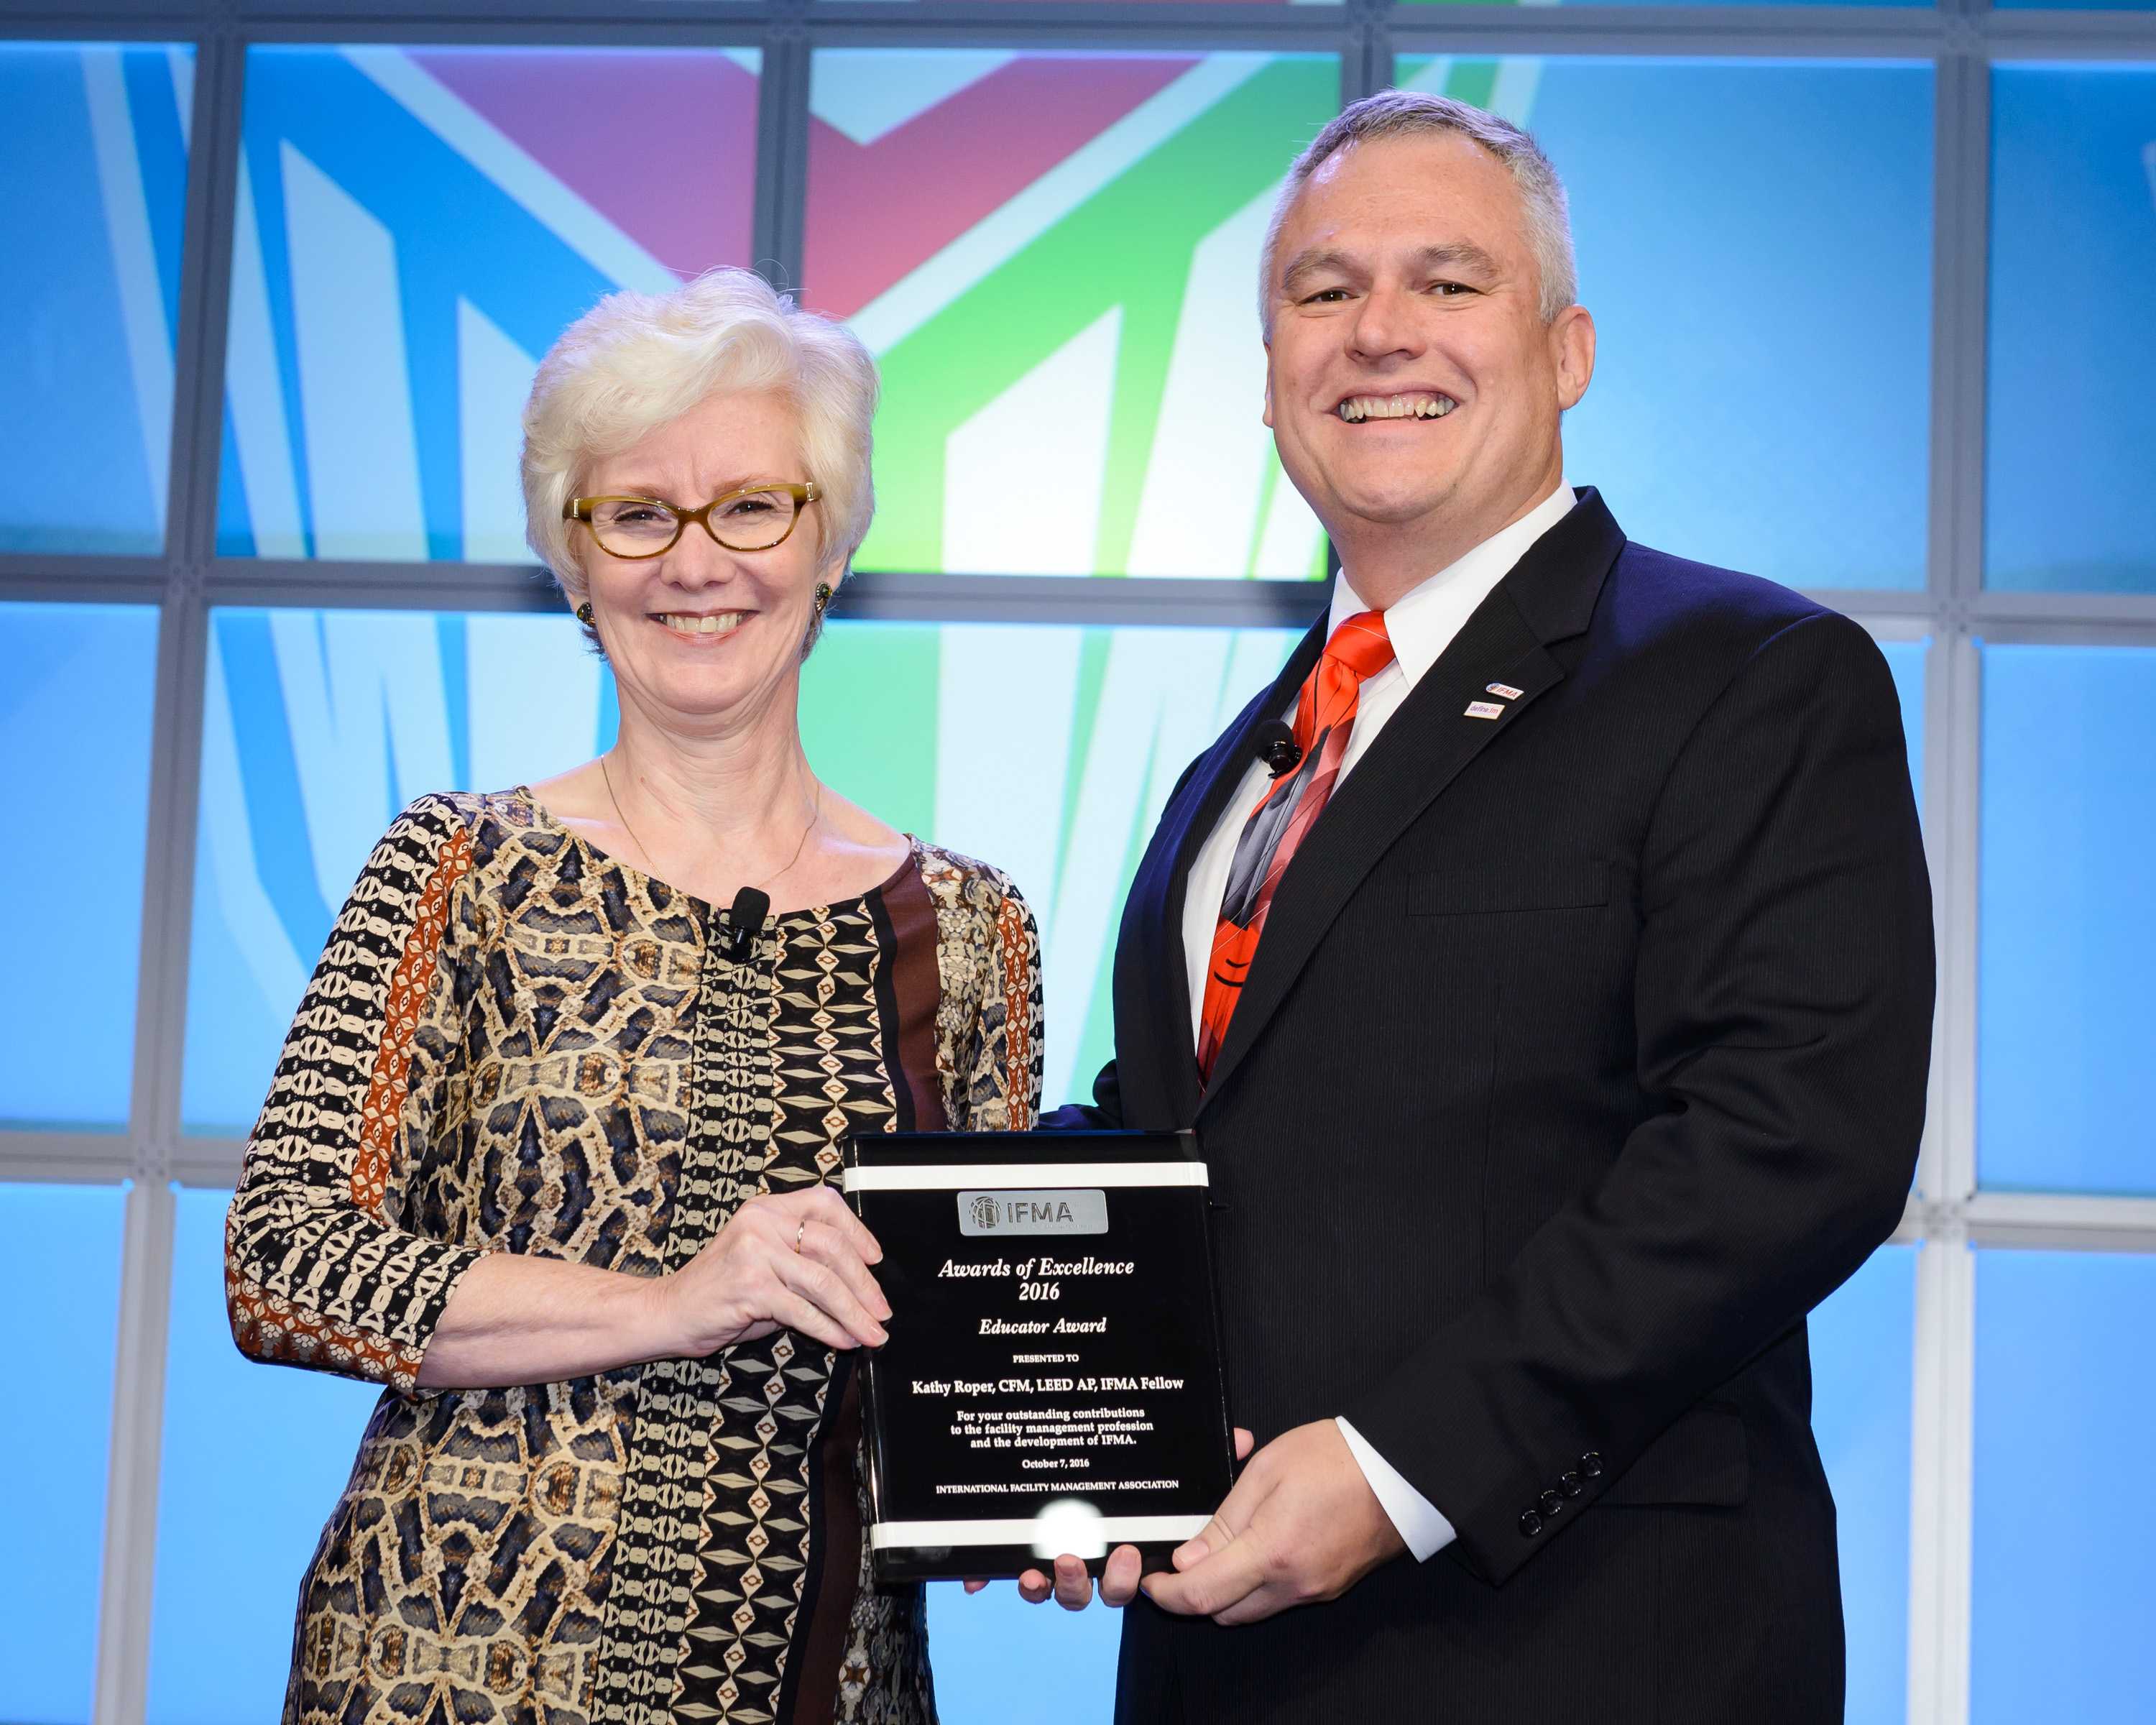 Kathy Roper, CFM, LEED AP, IFMA Fellow receives Educator Award